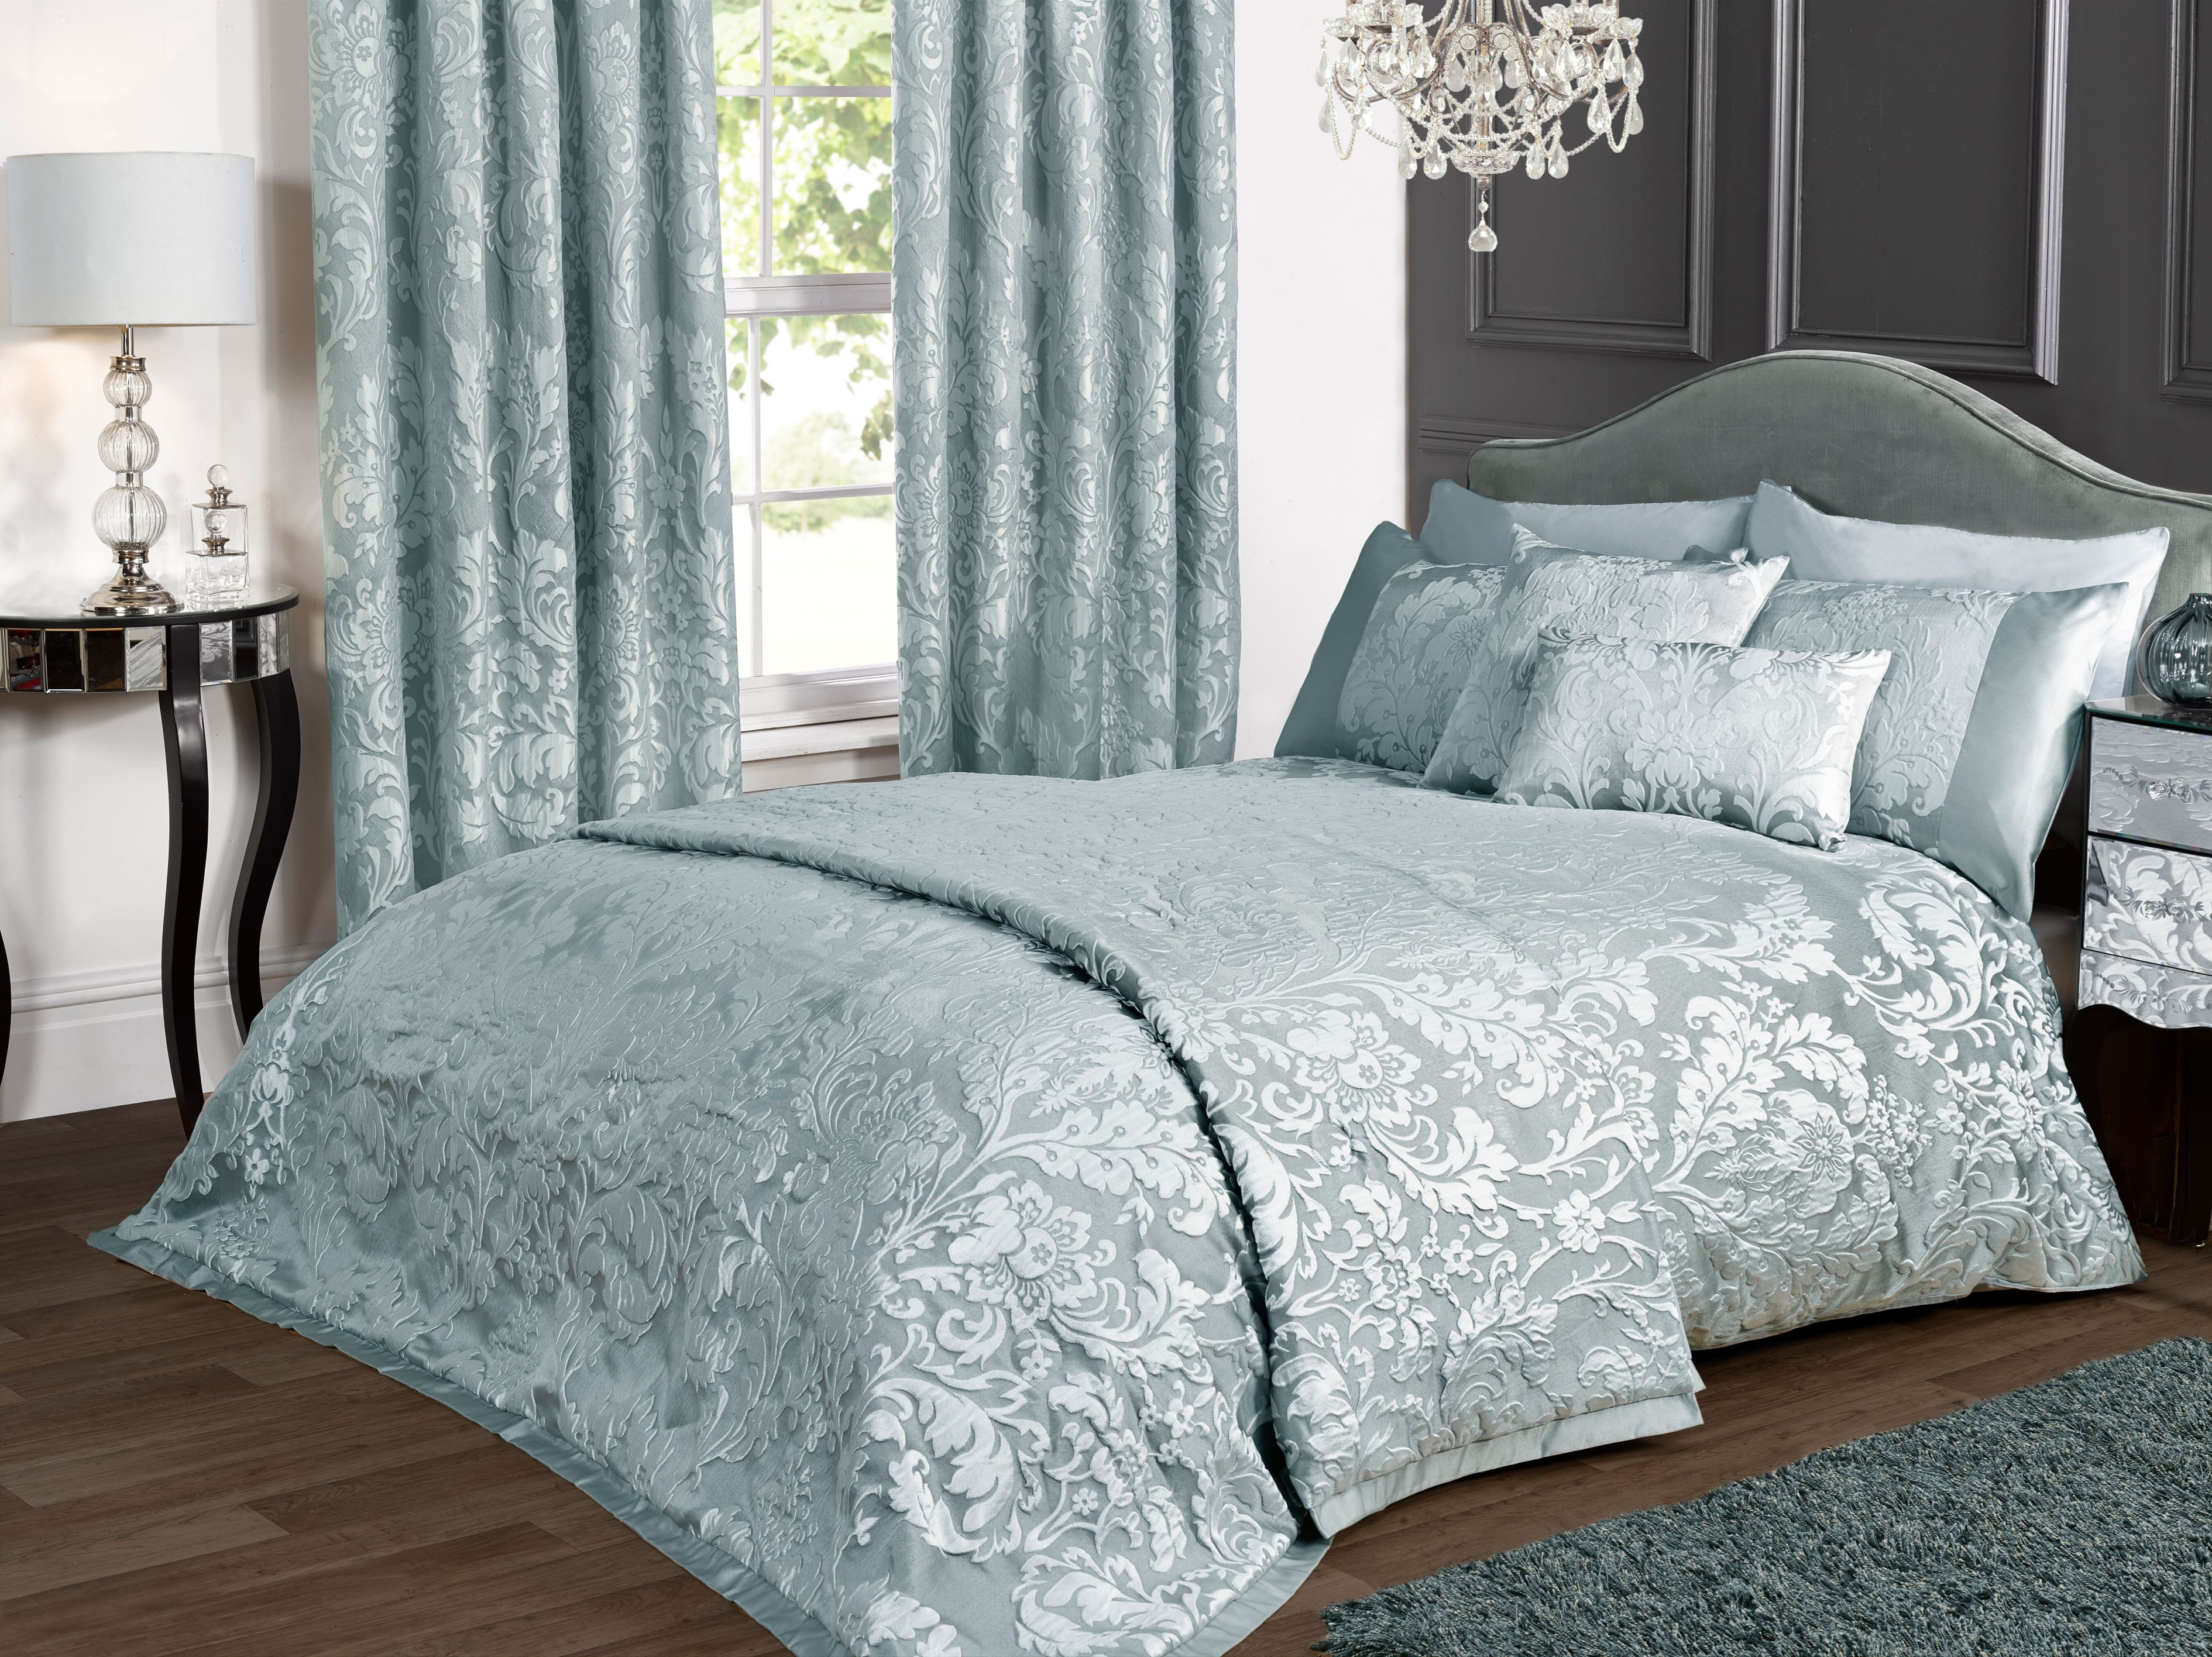 Charleston Duck Egg Blue Jacquard Bed Linen Collection